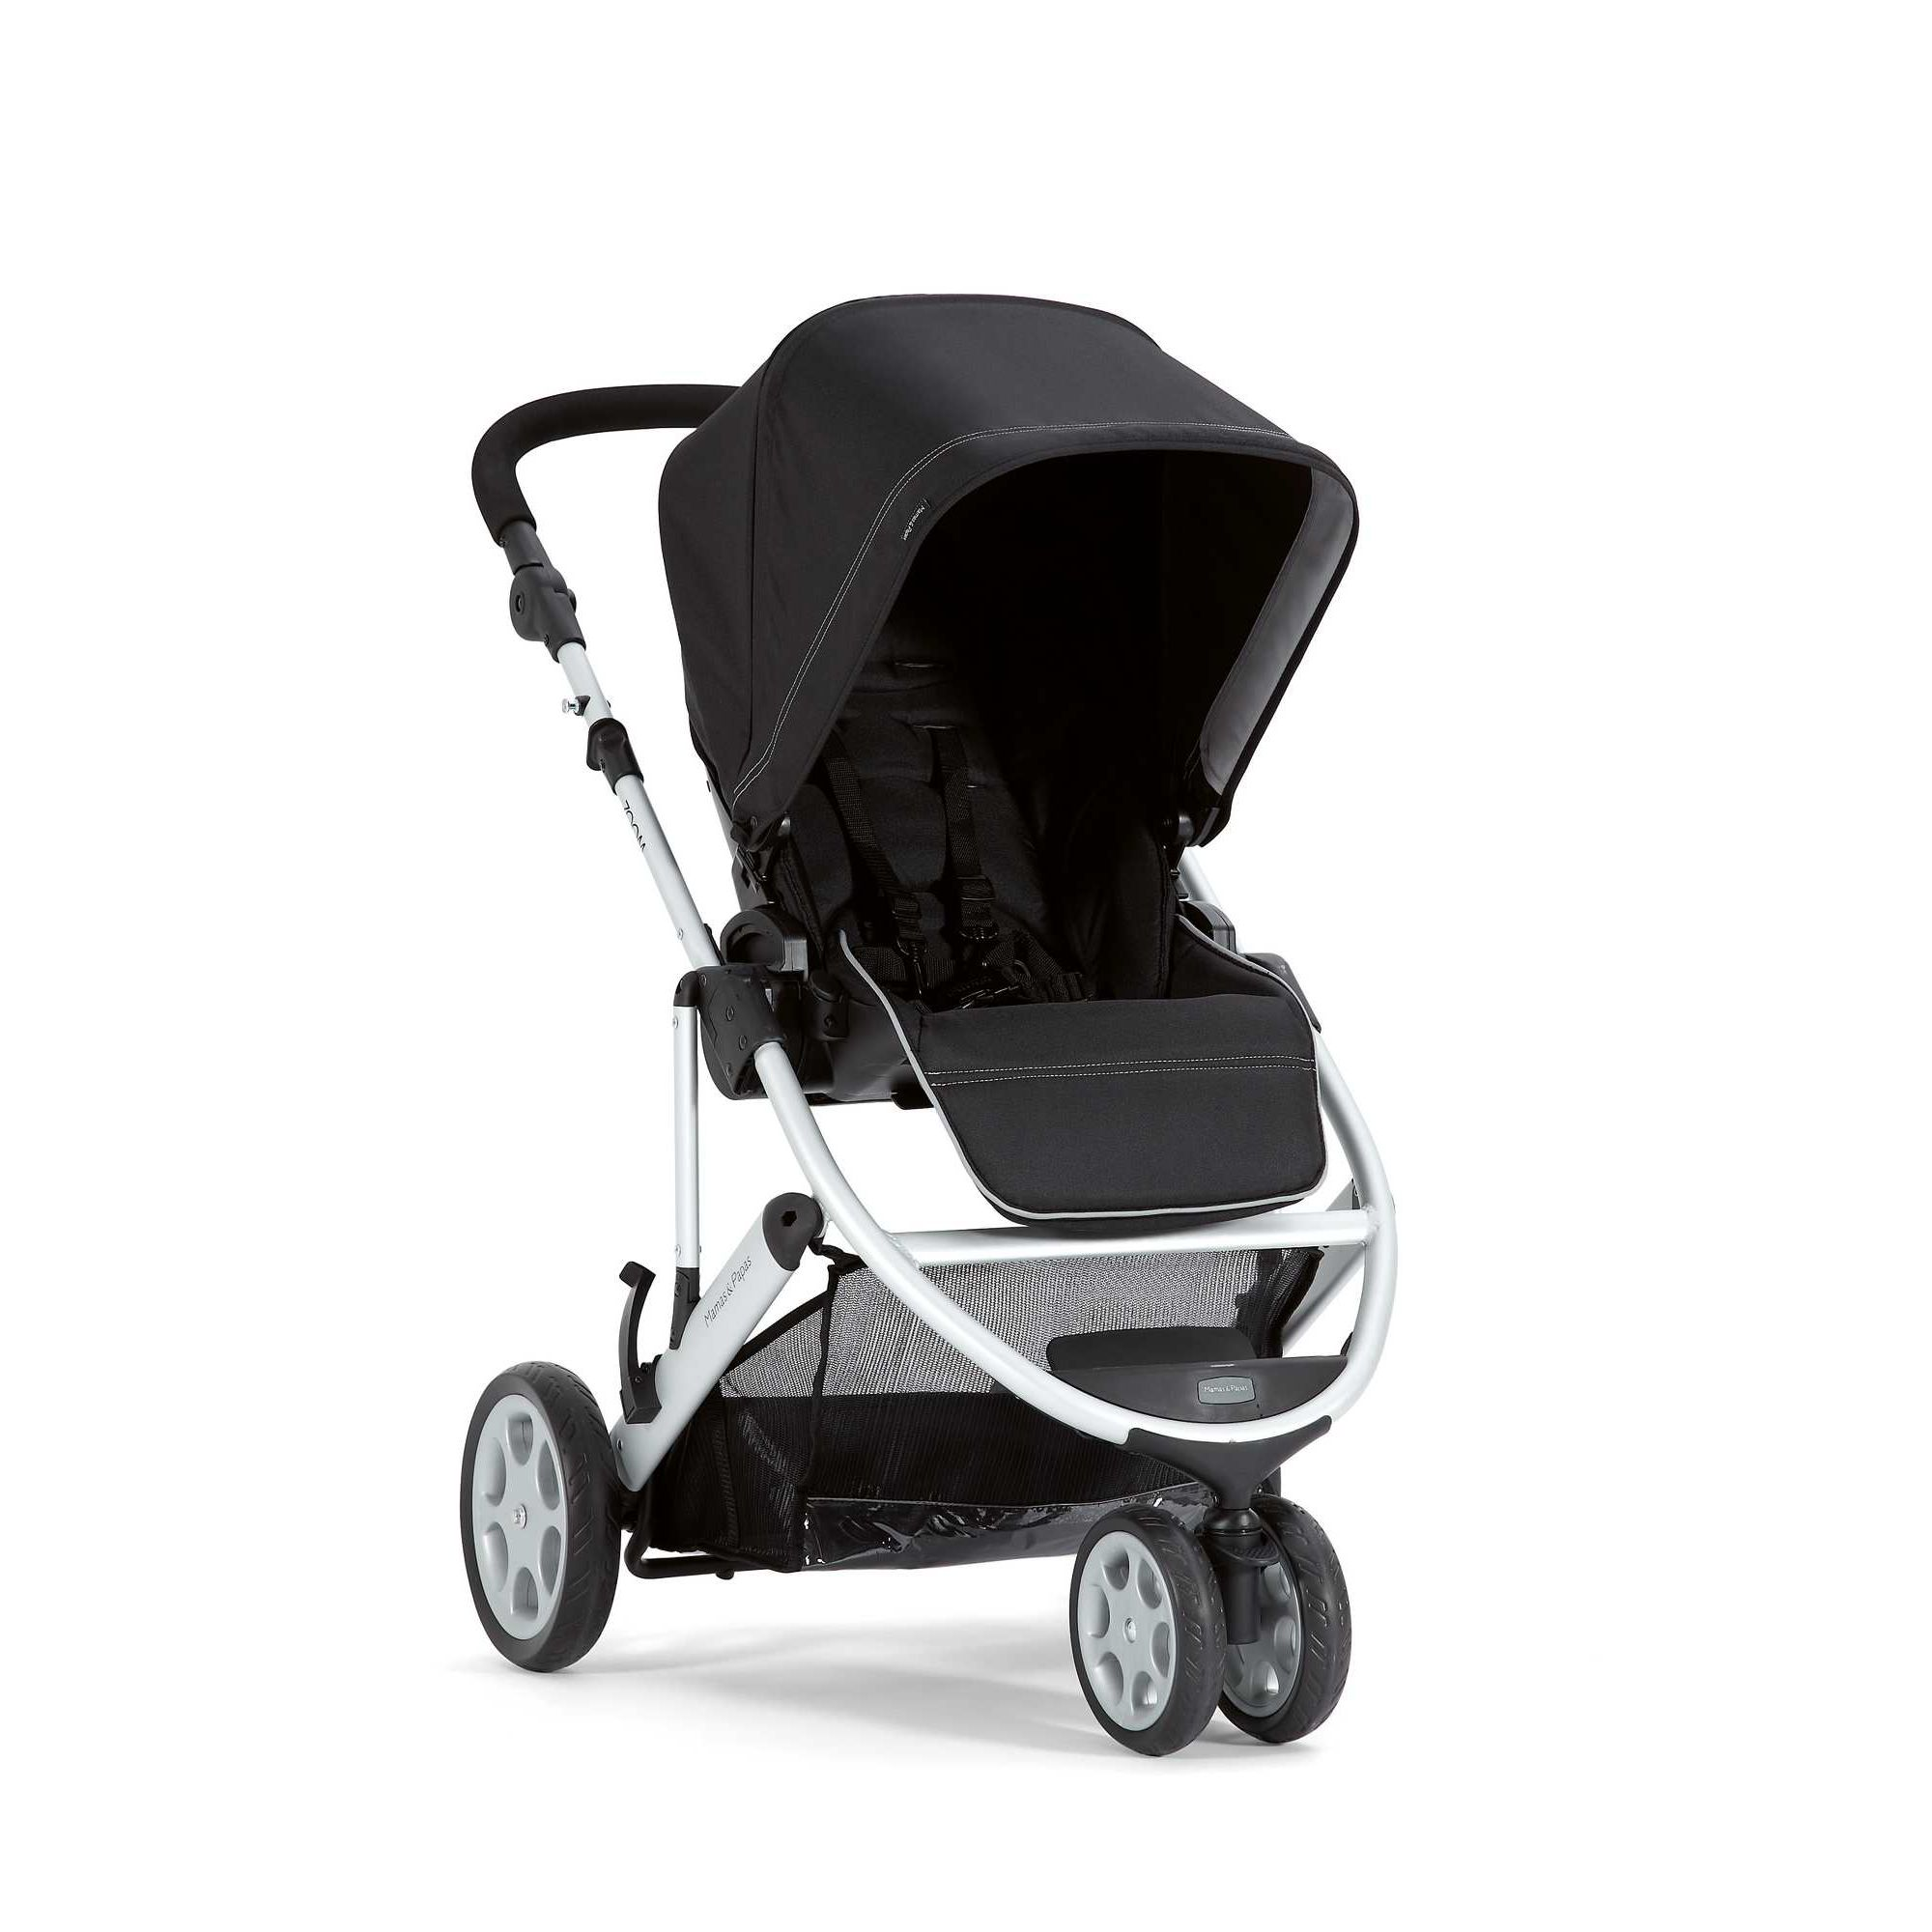 Mamas & Papas - Zoom Pushchair Package - Black/Charcoal at Tesco Direct